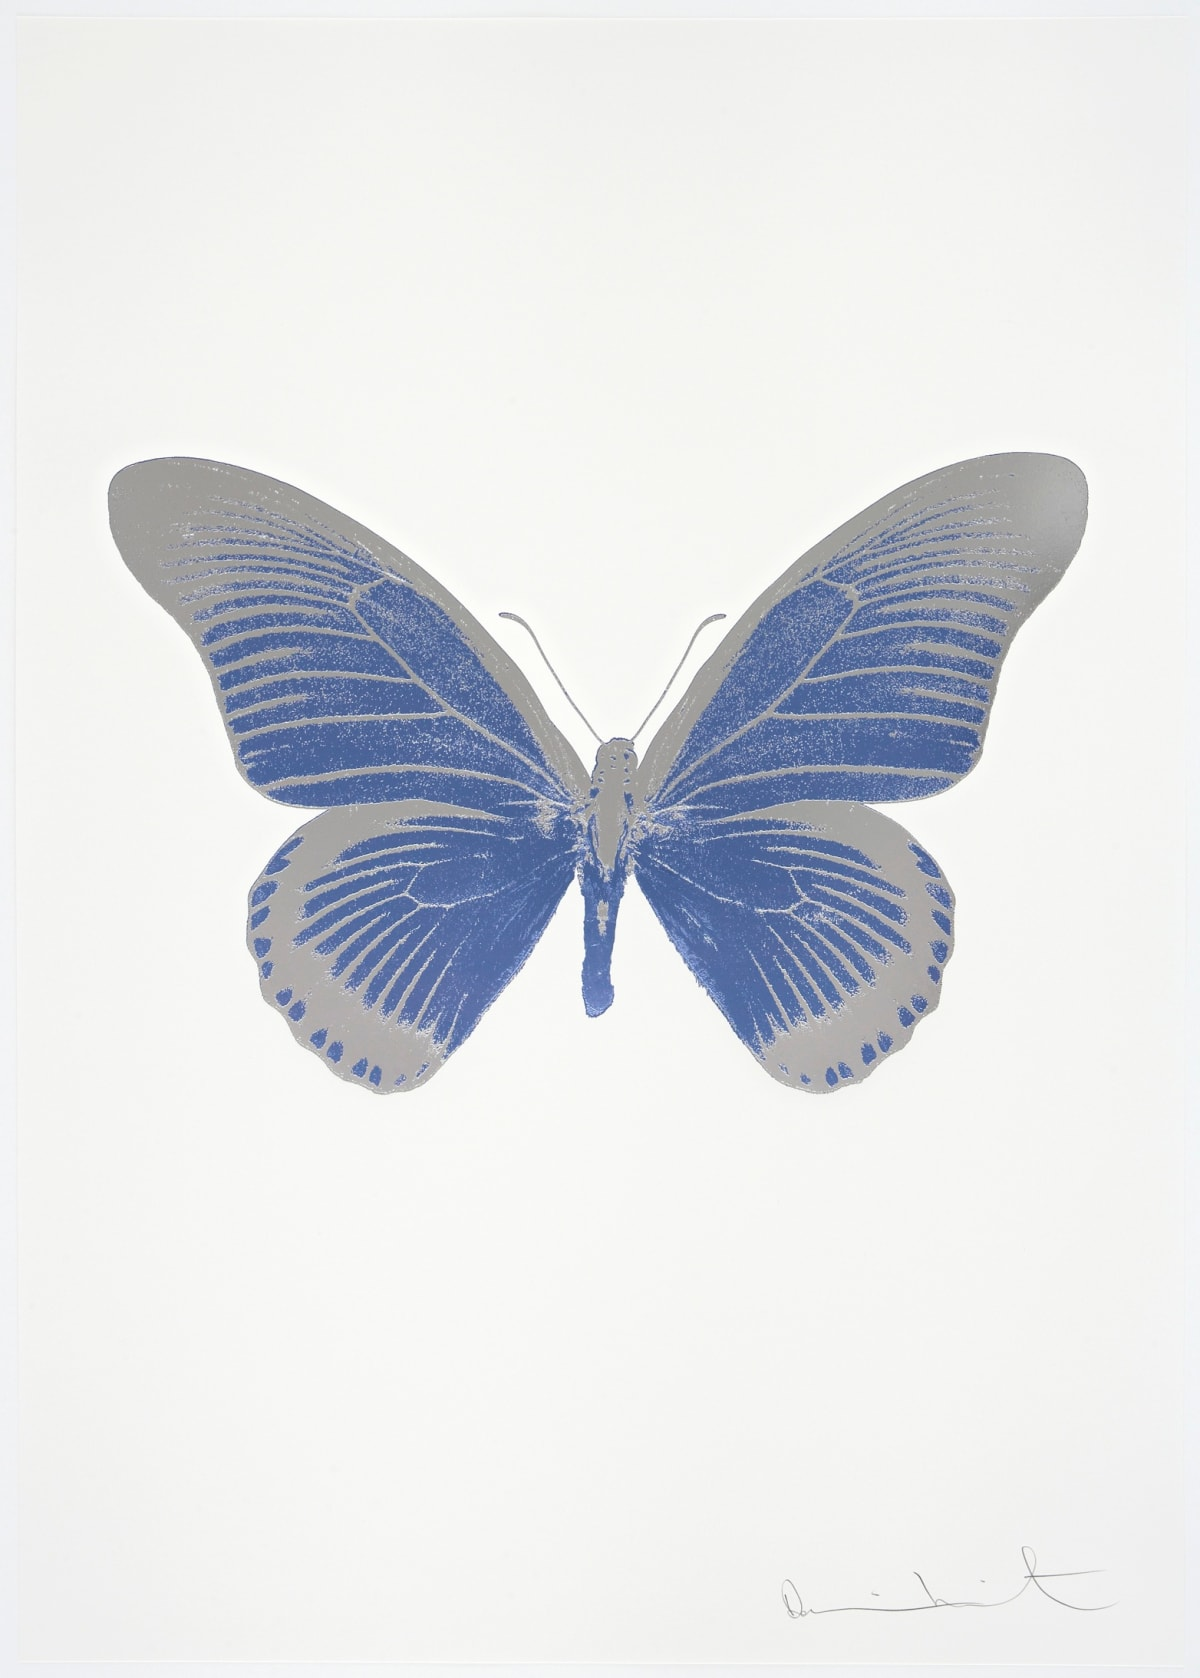 Damien Hirst The Souls IV - Cornflower Blue/Silver Gloss/Blind Impression, 2010 2 colour foil block on 300gsm Arches 88 archival paper. Signed and numbered. Published by Paul Stolper and Other Criteria 72 x 51cm OC8050 / 1418-73 Edition of 15